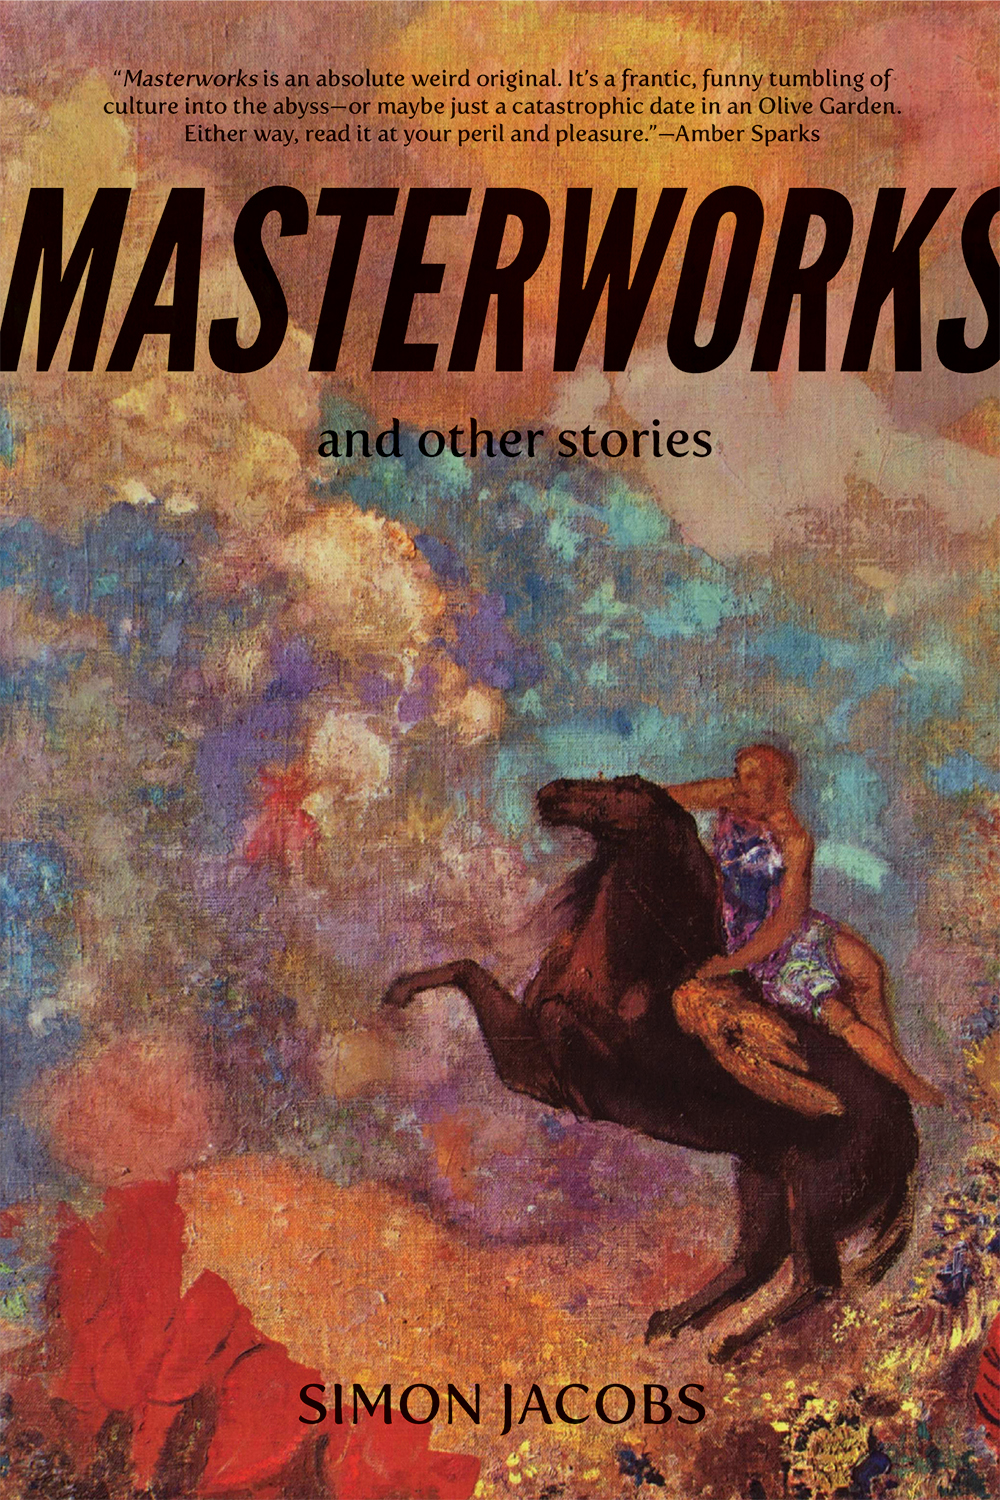 Masterworks and Other Stories